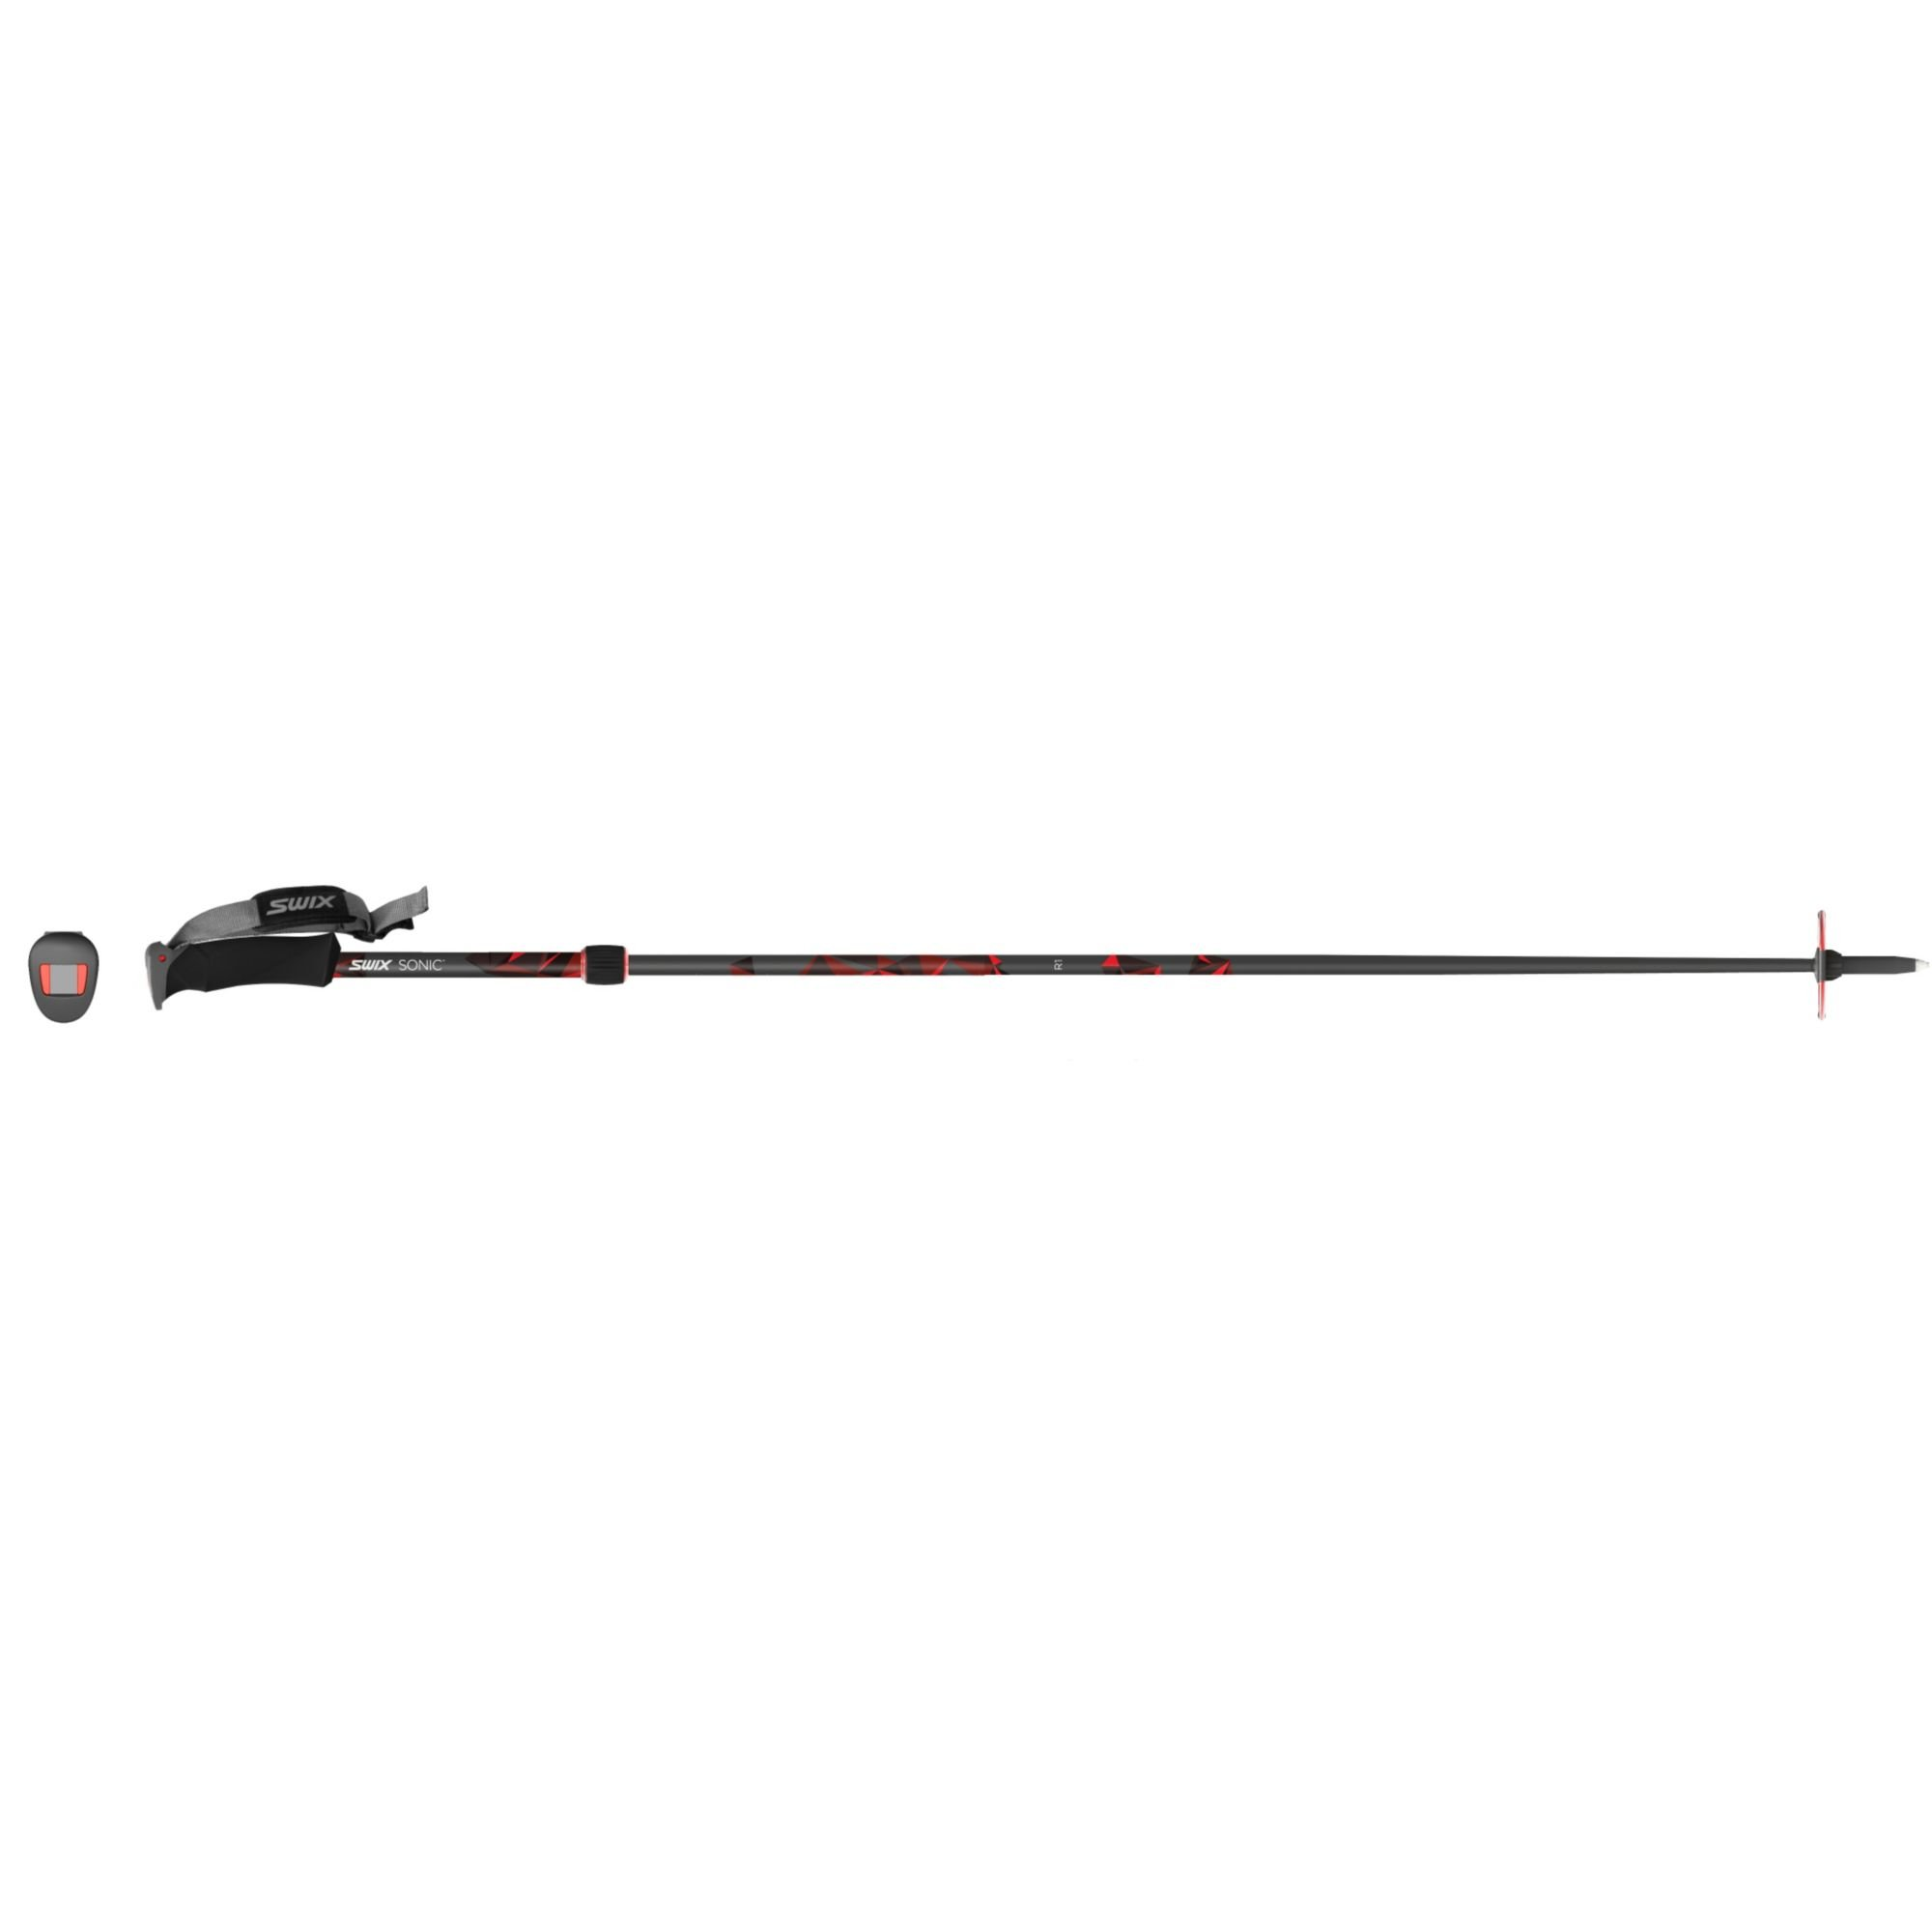 Swix Sonic R1 Full Carbon Adjustable Alpine Pole (2-Piece), Black/Red, Large/125-150cm by Swix